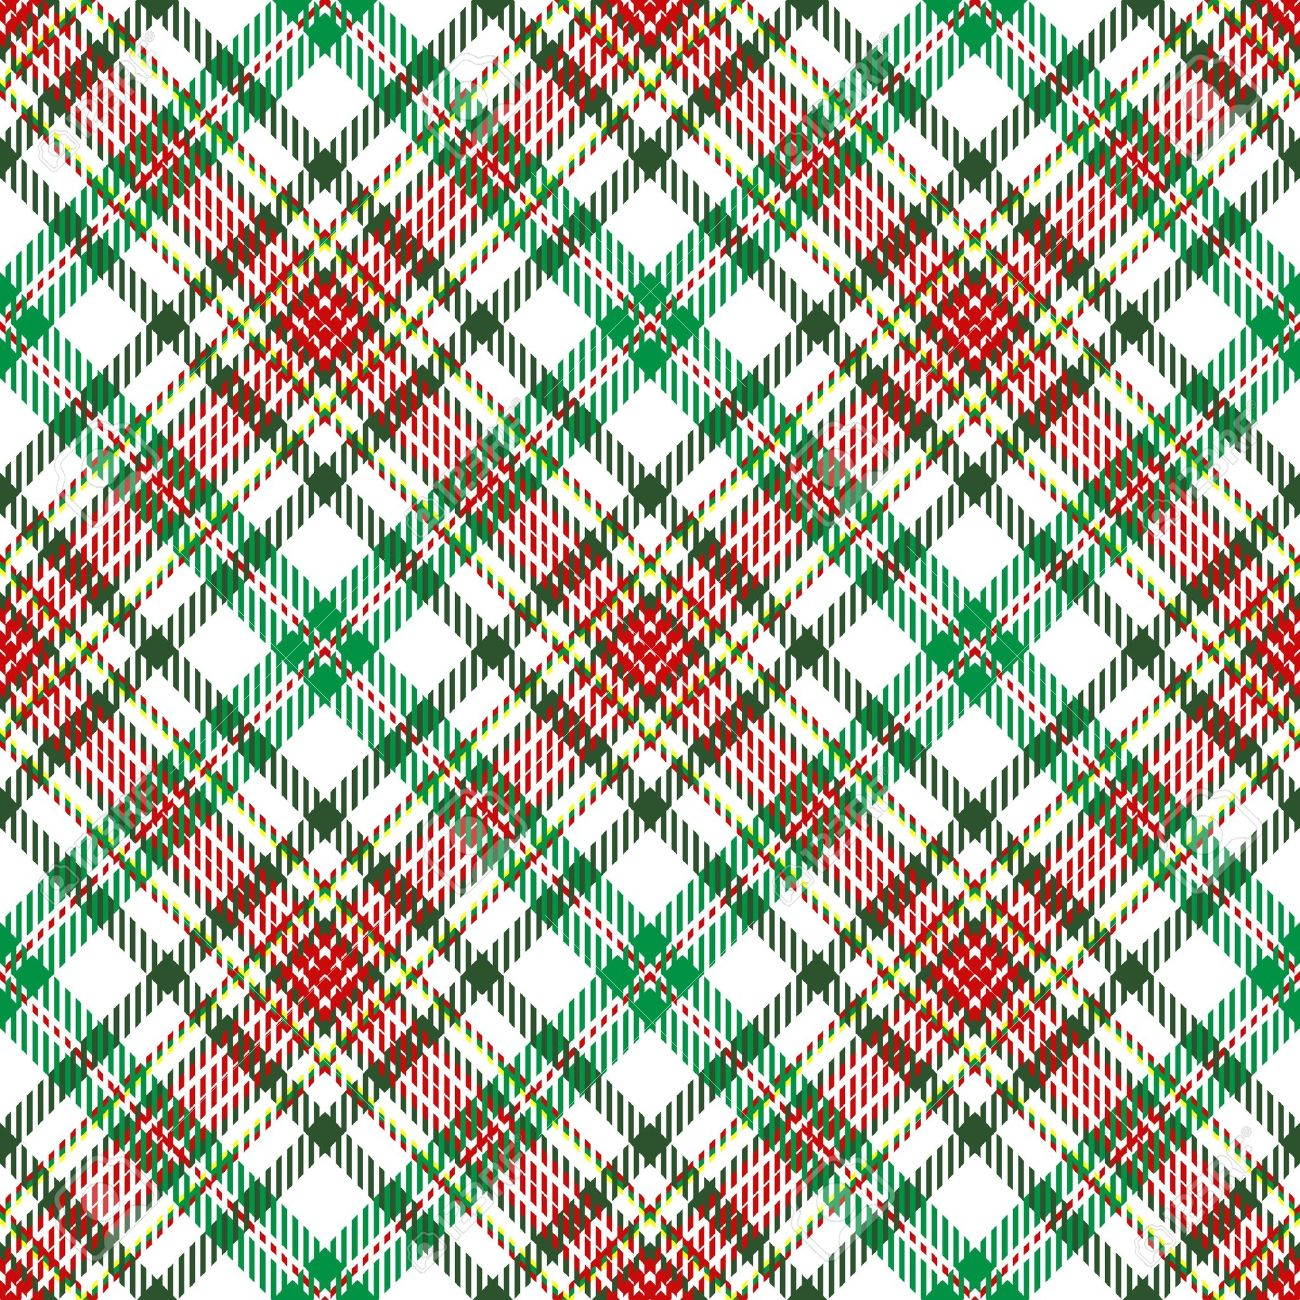 Christmas Plaid.A Plaid Background Pattern In Christmas Colors